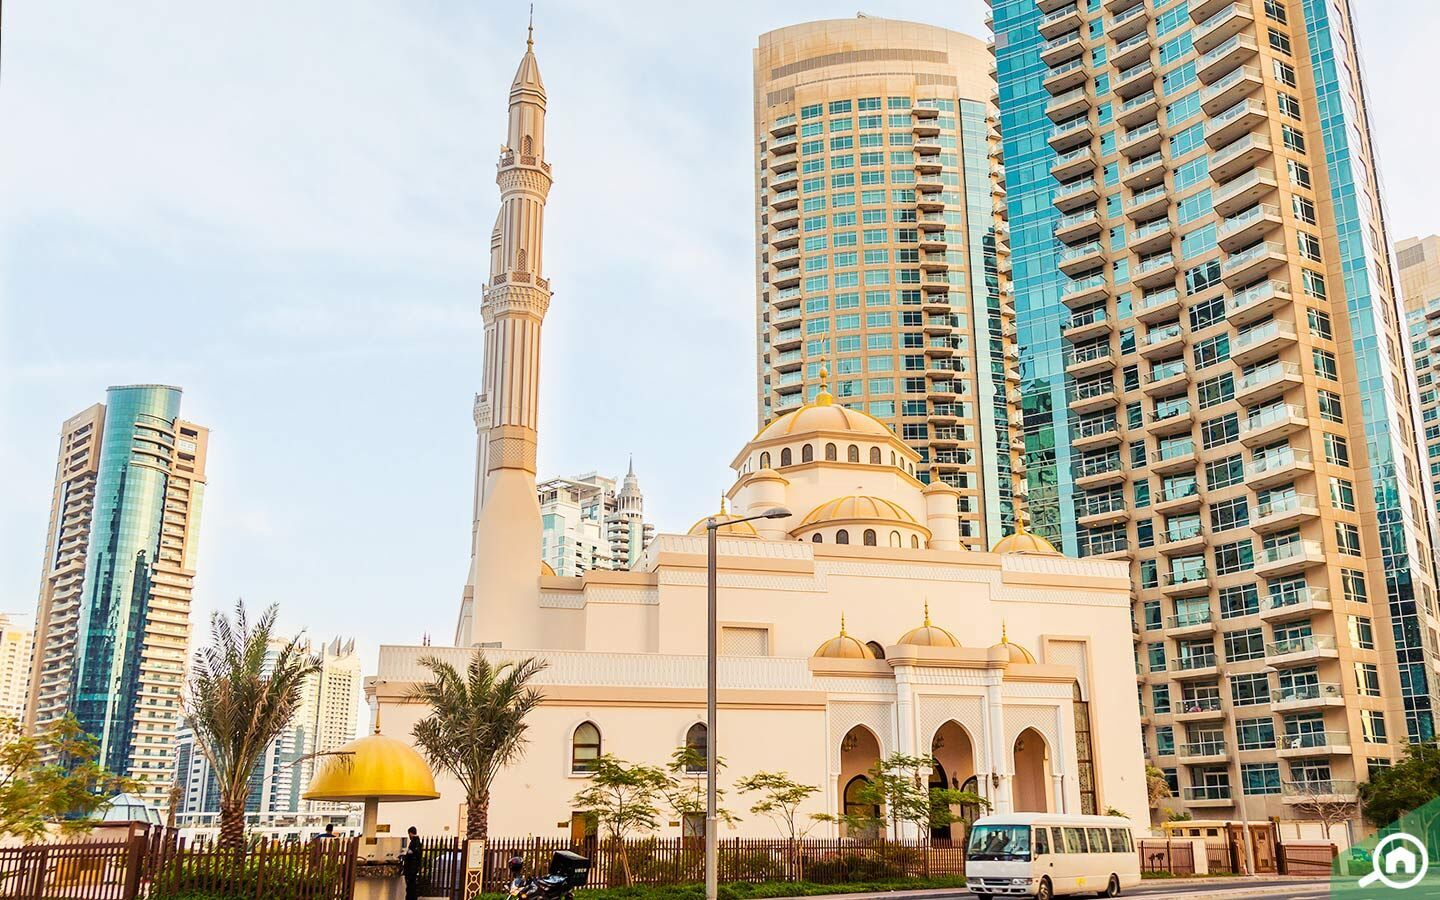 Mosques in JBR